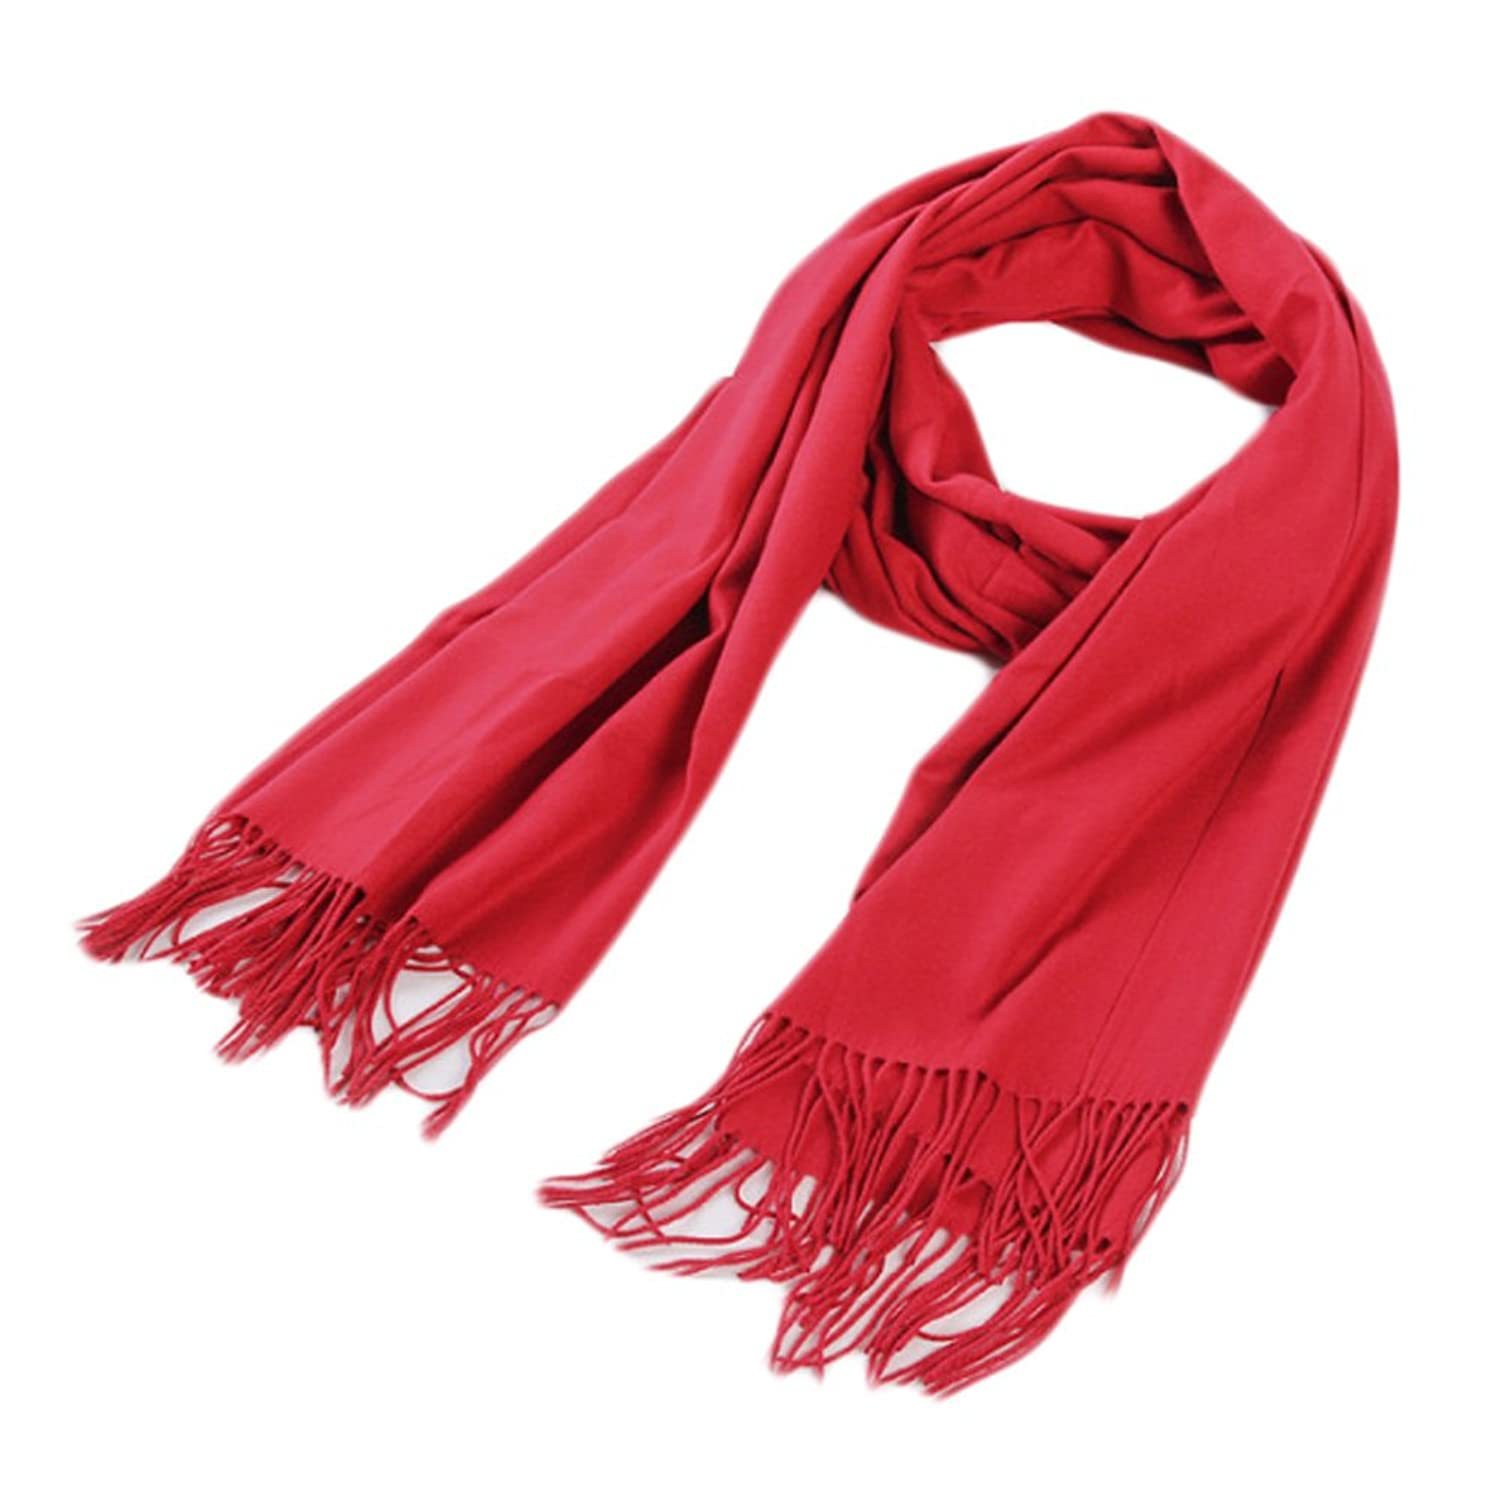 Stylish Cashmere Shawl Luxurious Pashm Tassel Soft Warm Scarf Red